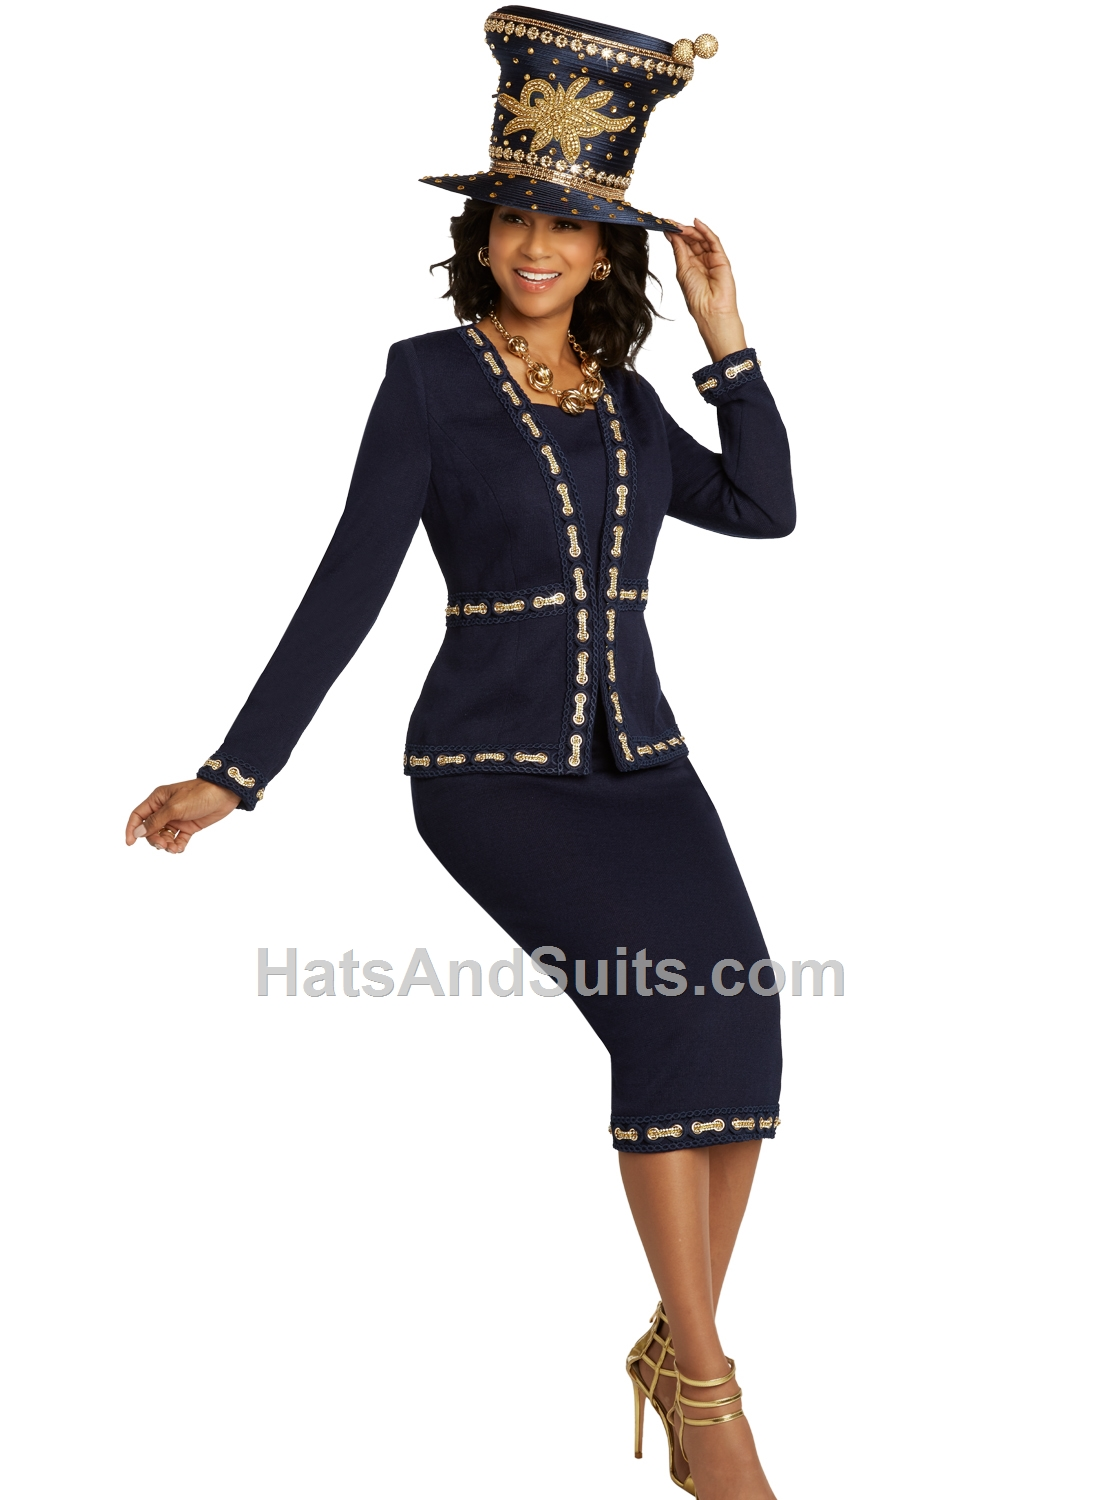 13293 Donna Vinci KNITS Women Suit, 2 Pc. Jacket & Skirt Set. SP20